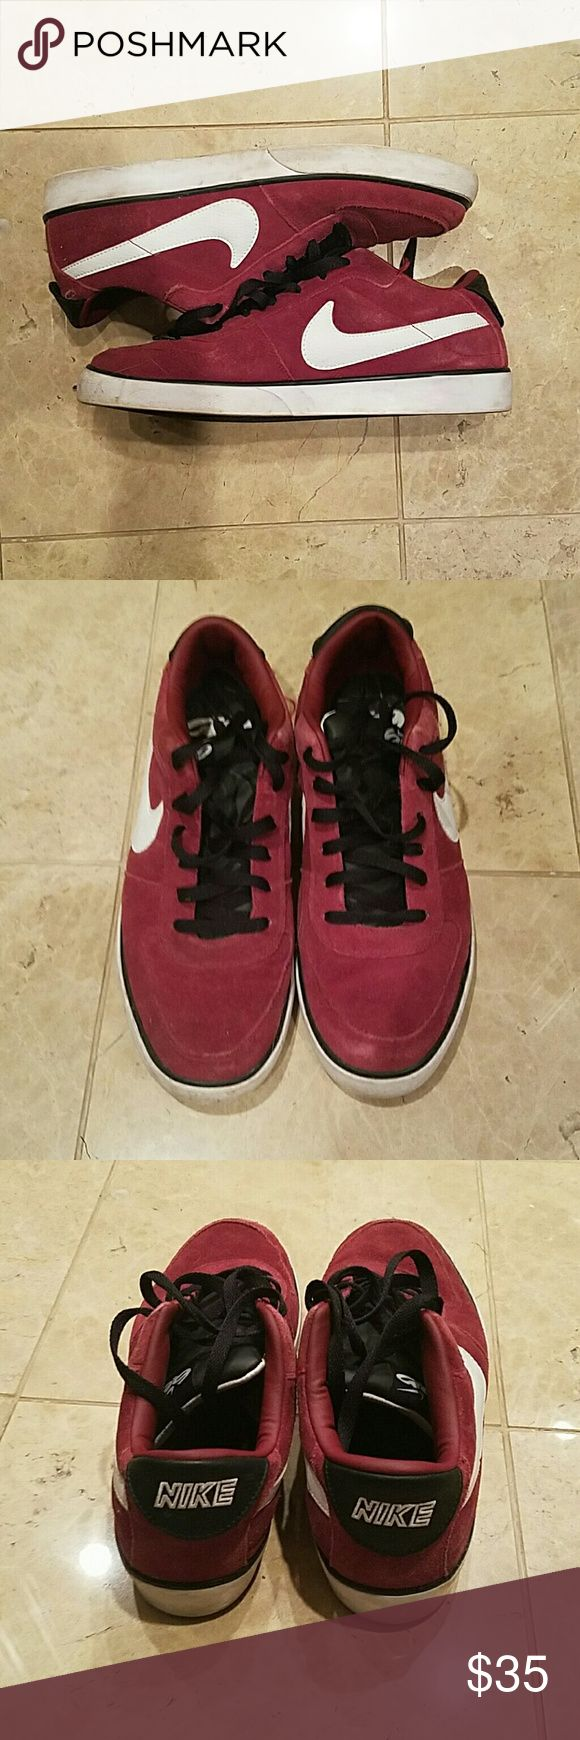 Men's Nike Shoes Size 11 Condition 8.5/10 mens nike 6.0 sjoes colors consist of burgundy white and black. Skateboard shoes i believe. Nike Shoes Sneakers